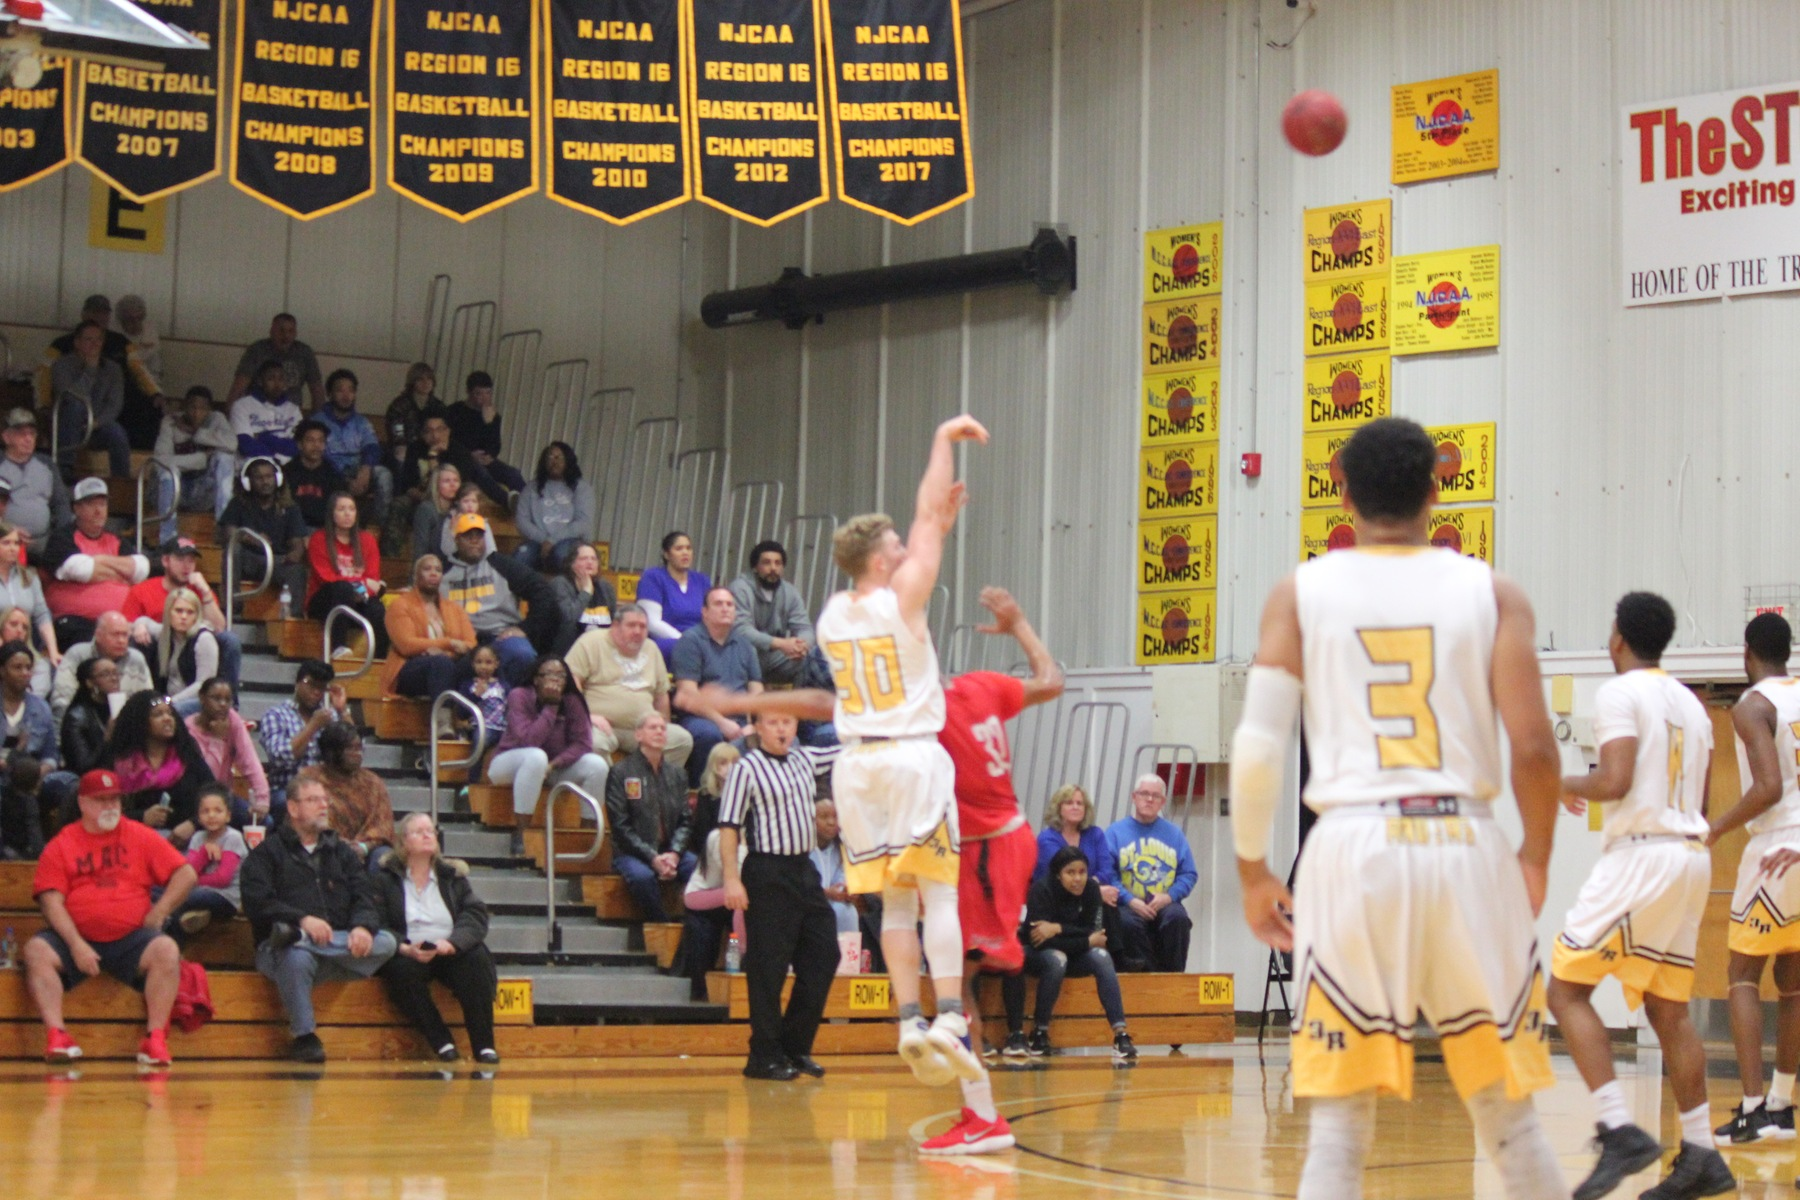 Raiders fall short at buzzer